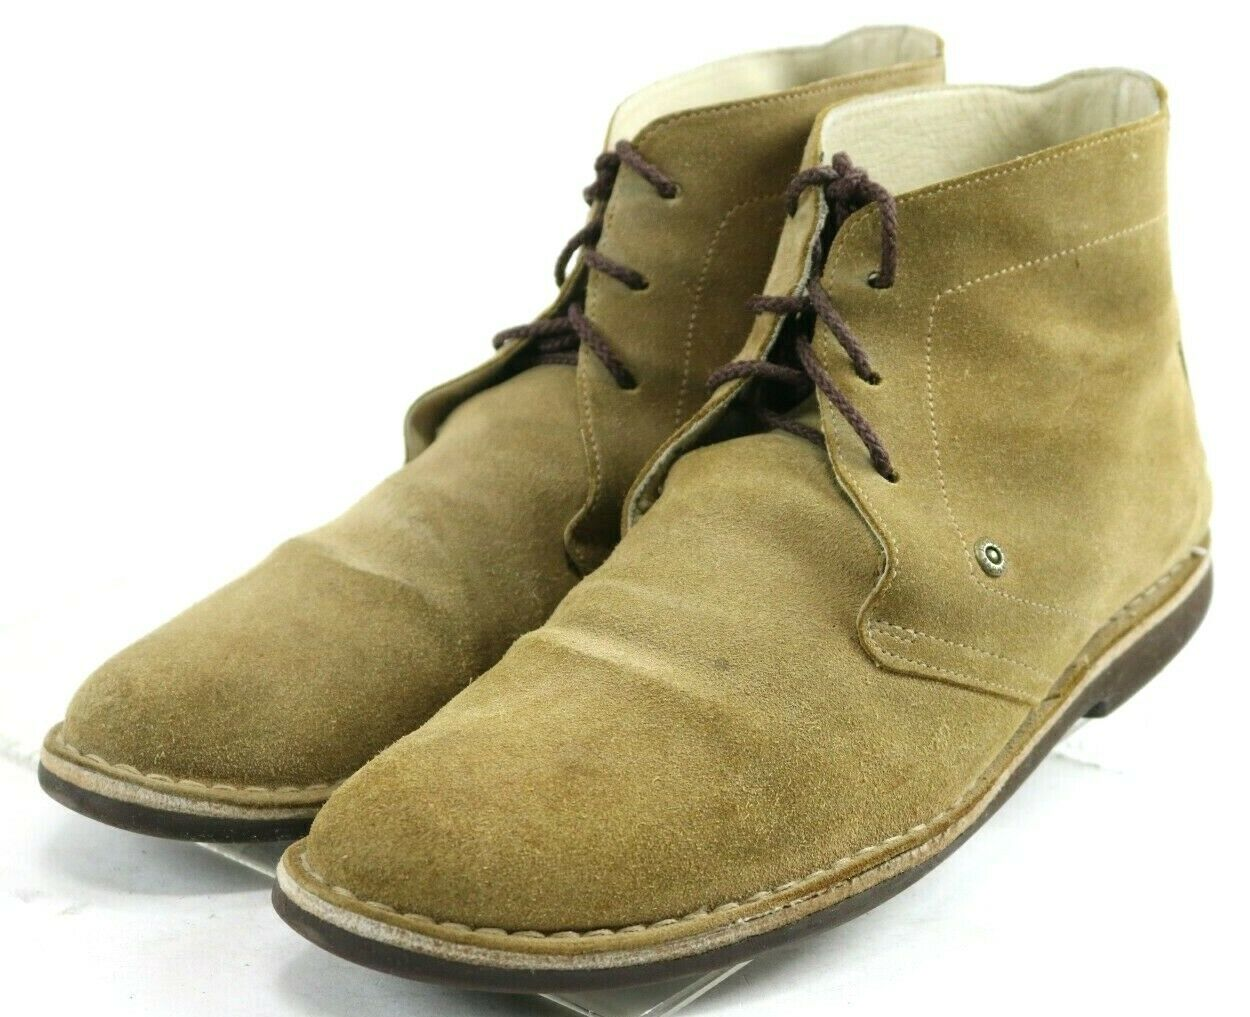 J. shoes Mistral  160 Men's Lace-Up Desert Boots Size 10.5 Suede Leather Brown